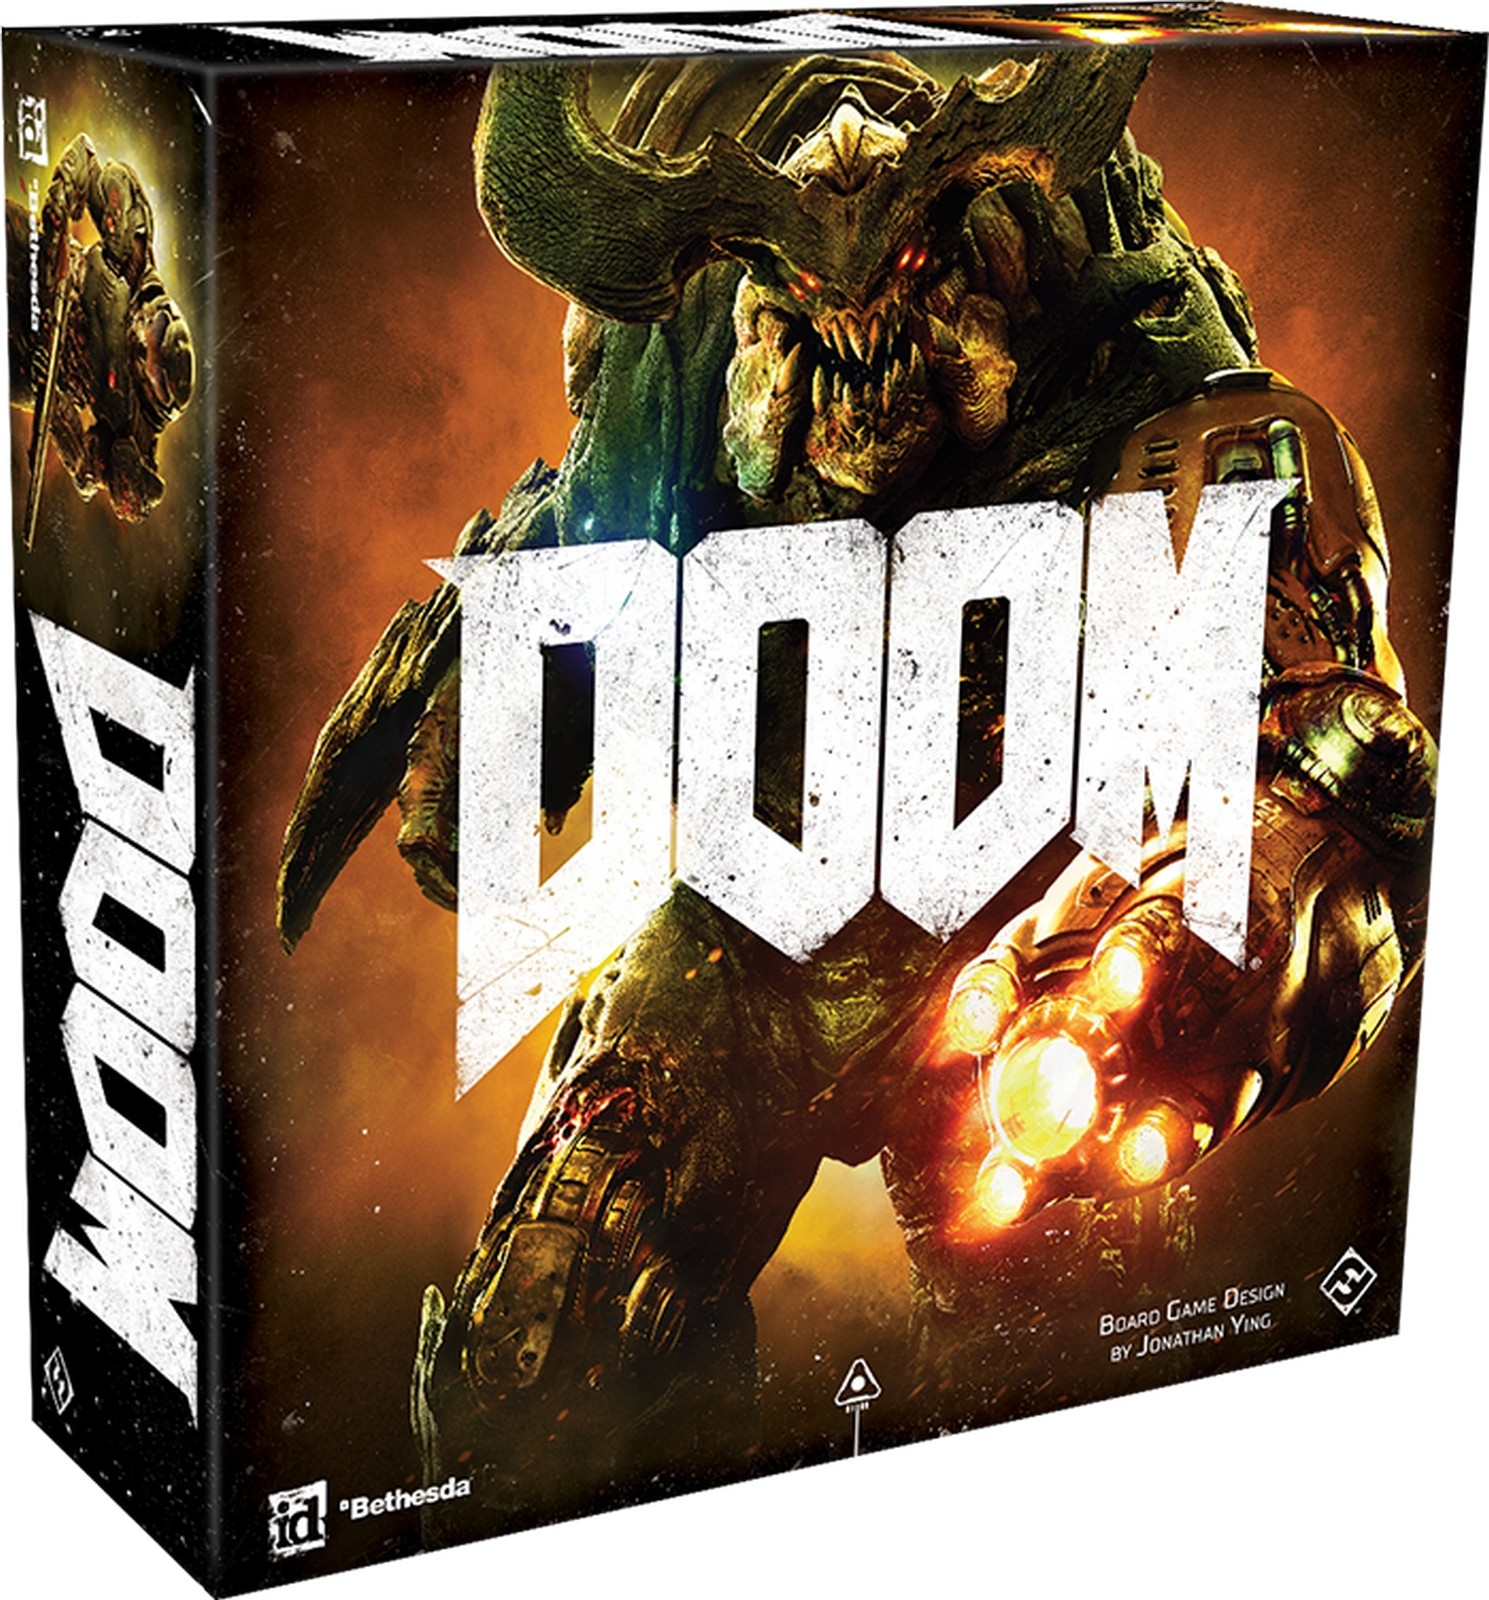 Fallout The Board Game Games Home Wayland Iron Man Vault Edition Pro Circuit Image Doom